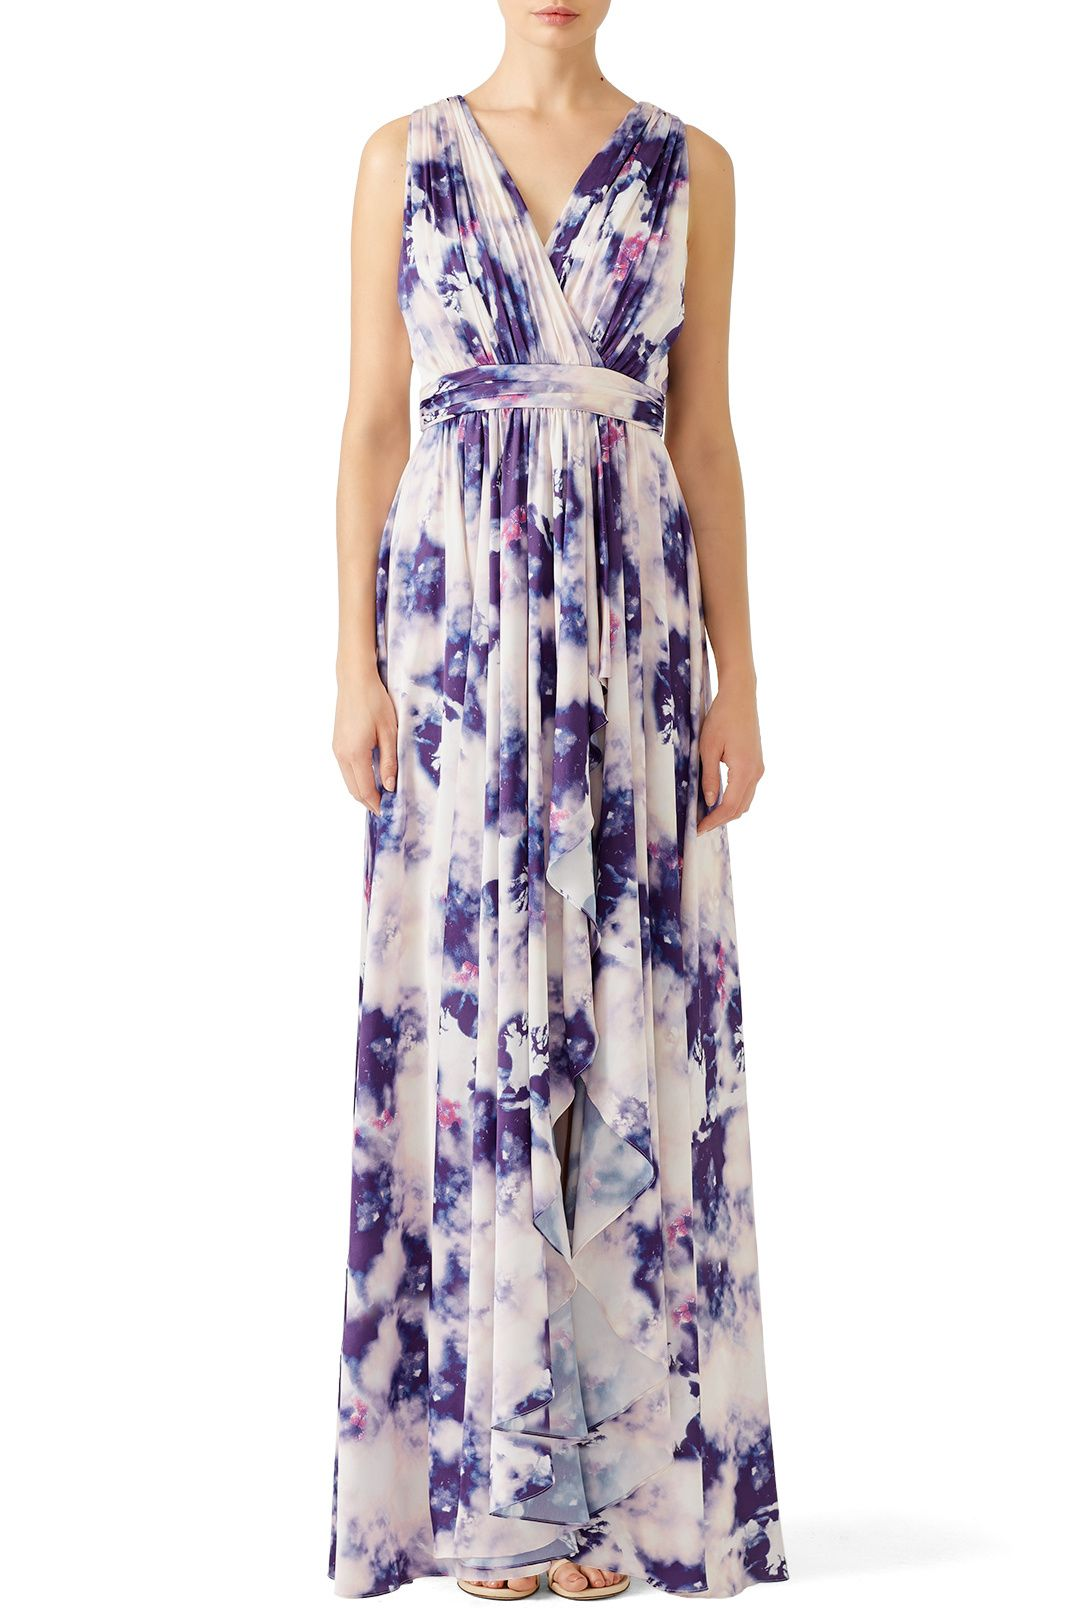 Rent Purple Cloud Printed Maxi by Badgley Mischka for $85 - $105 ...